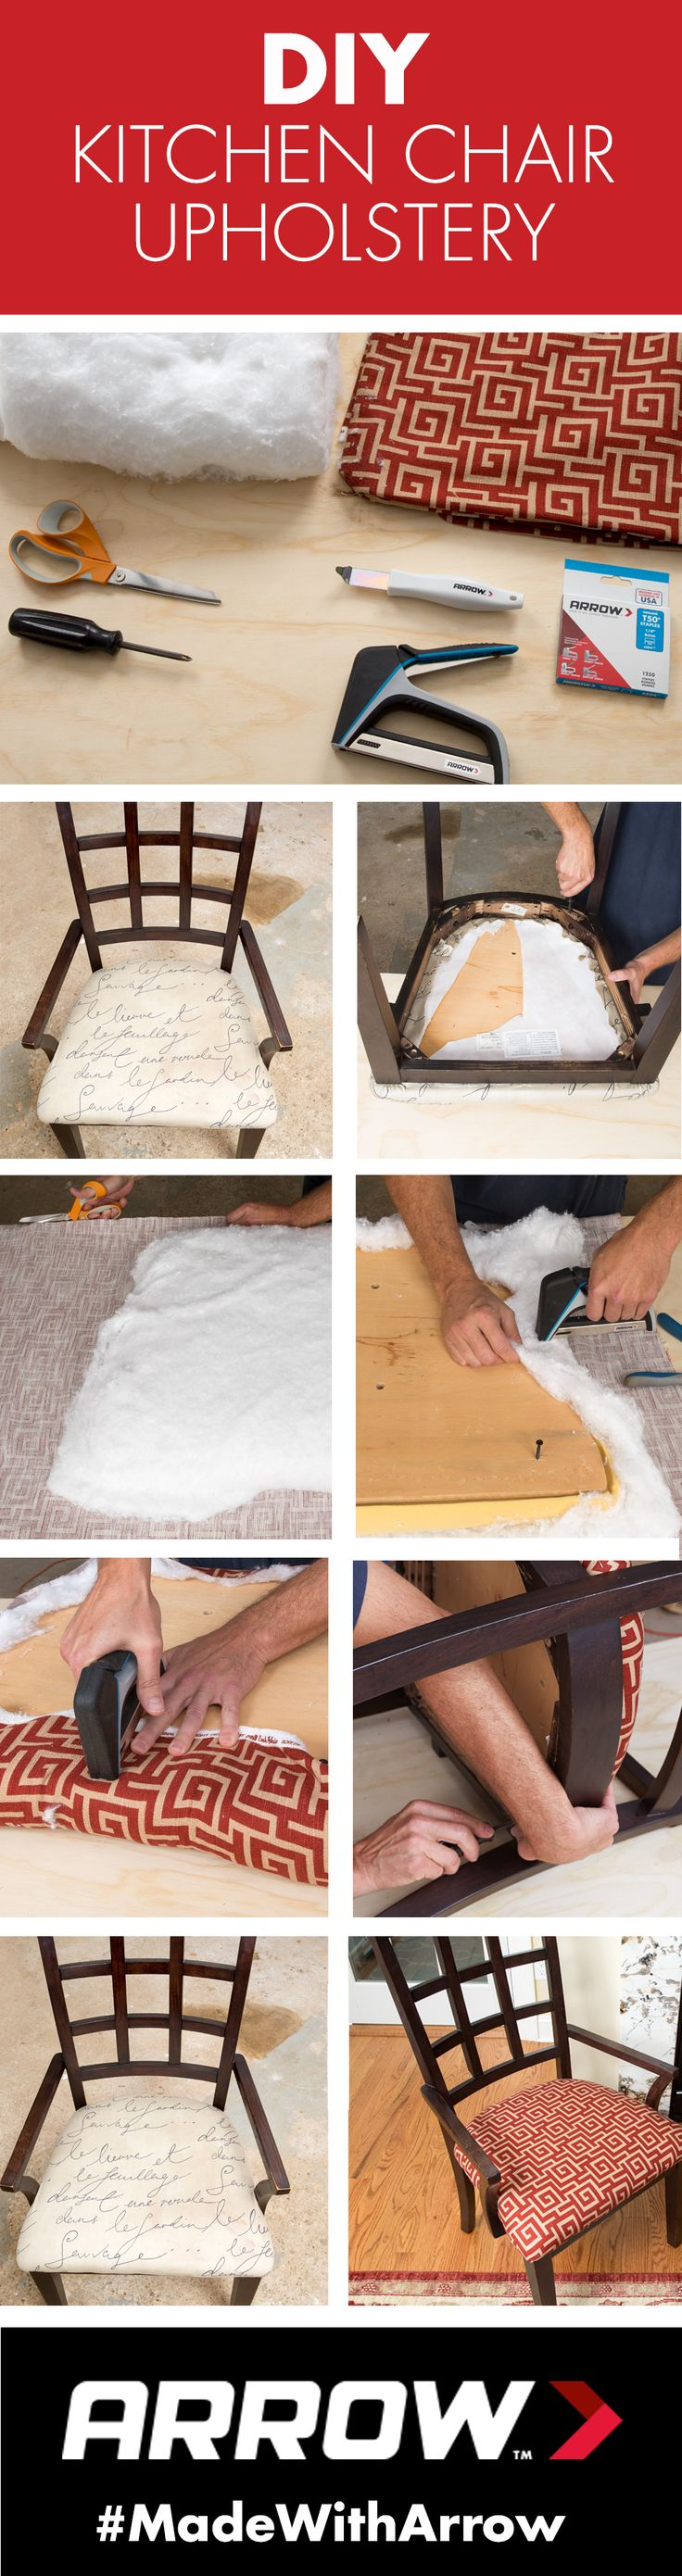 Update your dirty dining room and kitchen chairs with this DIY reupholstery tutorial that uses the TacMate staple gun, ¼-inch staples, a staple lifter and non-stretch fabric. Follow Arrow on Pinterest for more great projects! www.arrowfastener.com